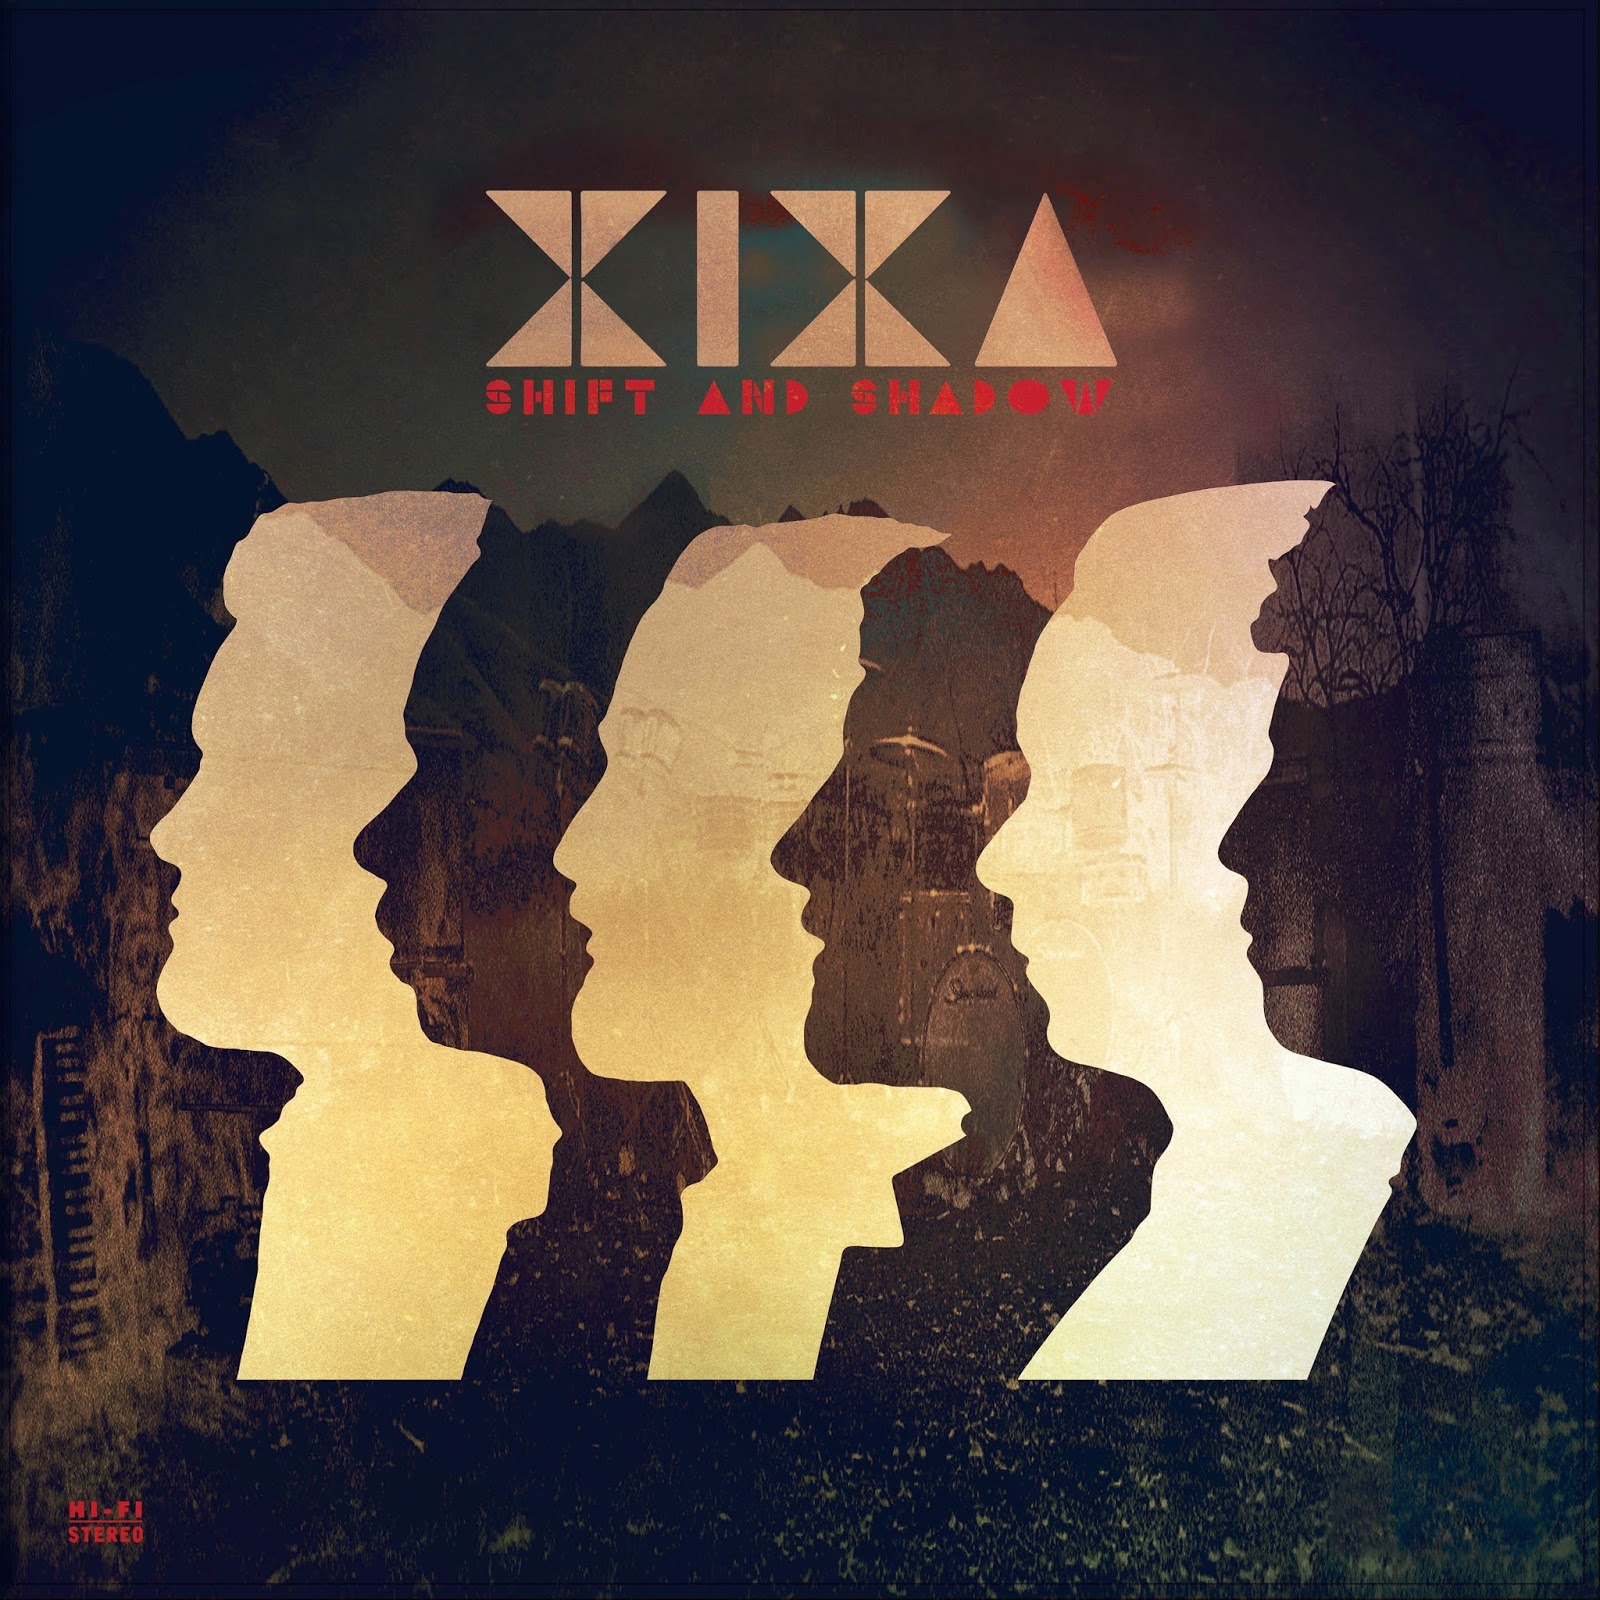 xixa, xixa music, xixa tucson, chicha tucson, chicha music, shift and shadow